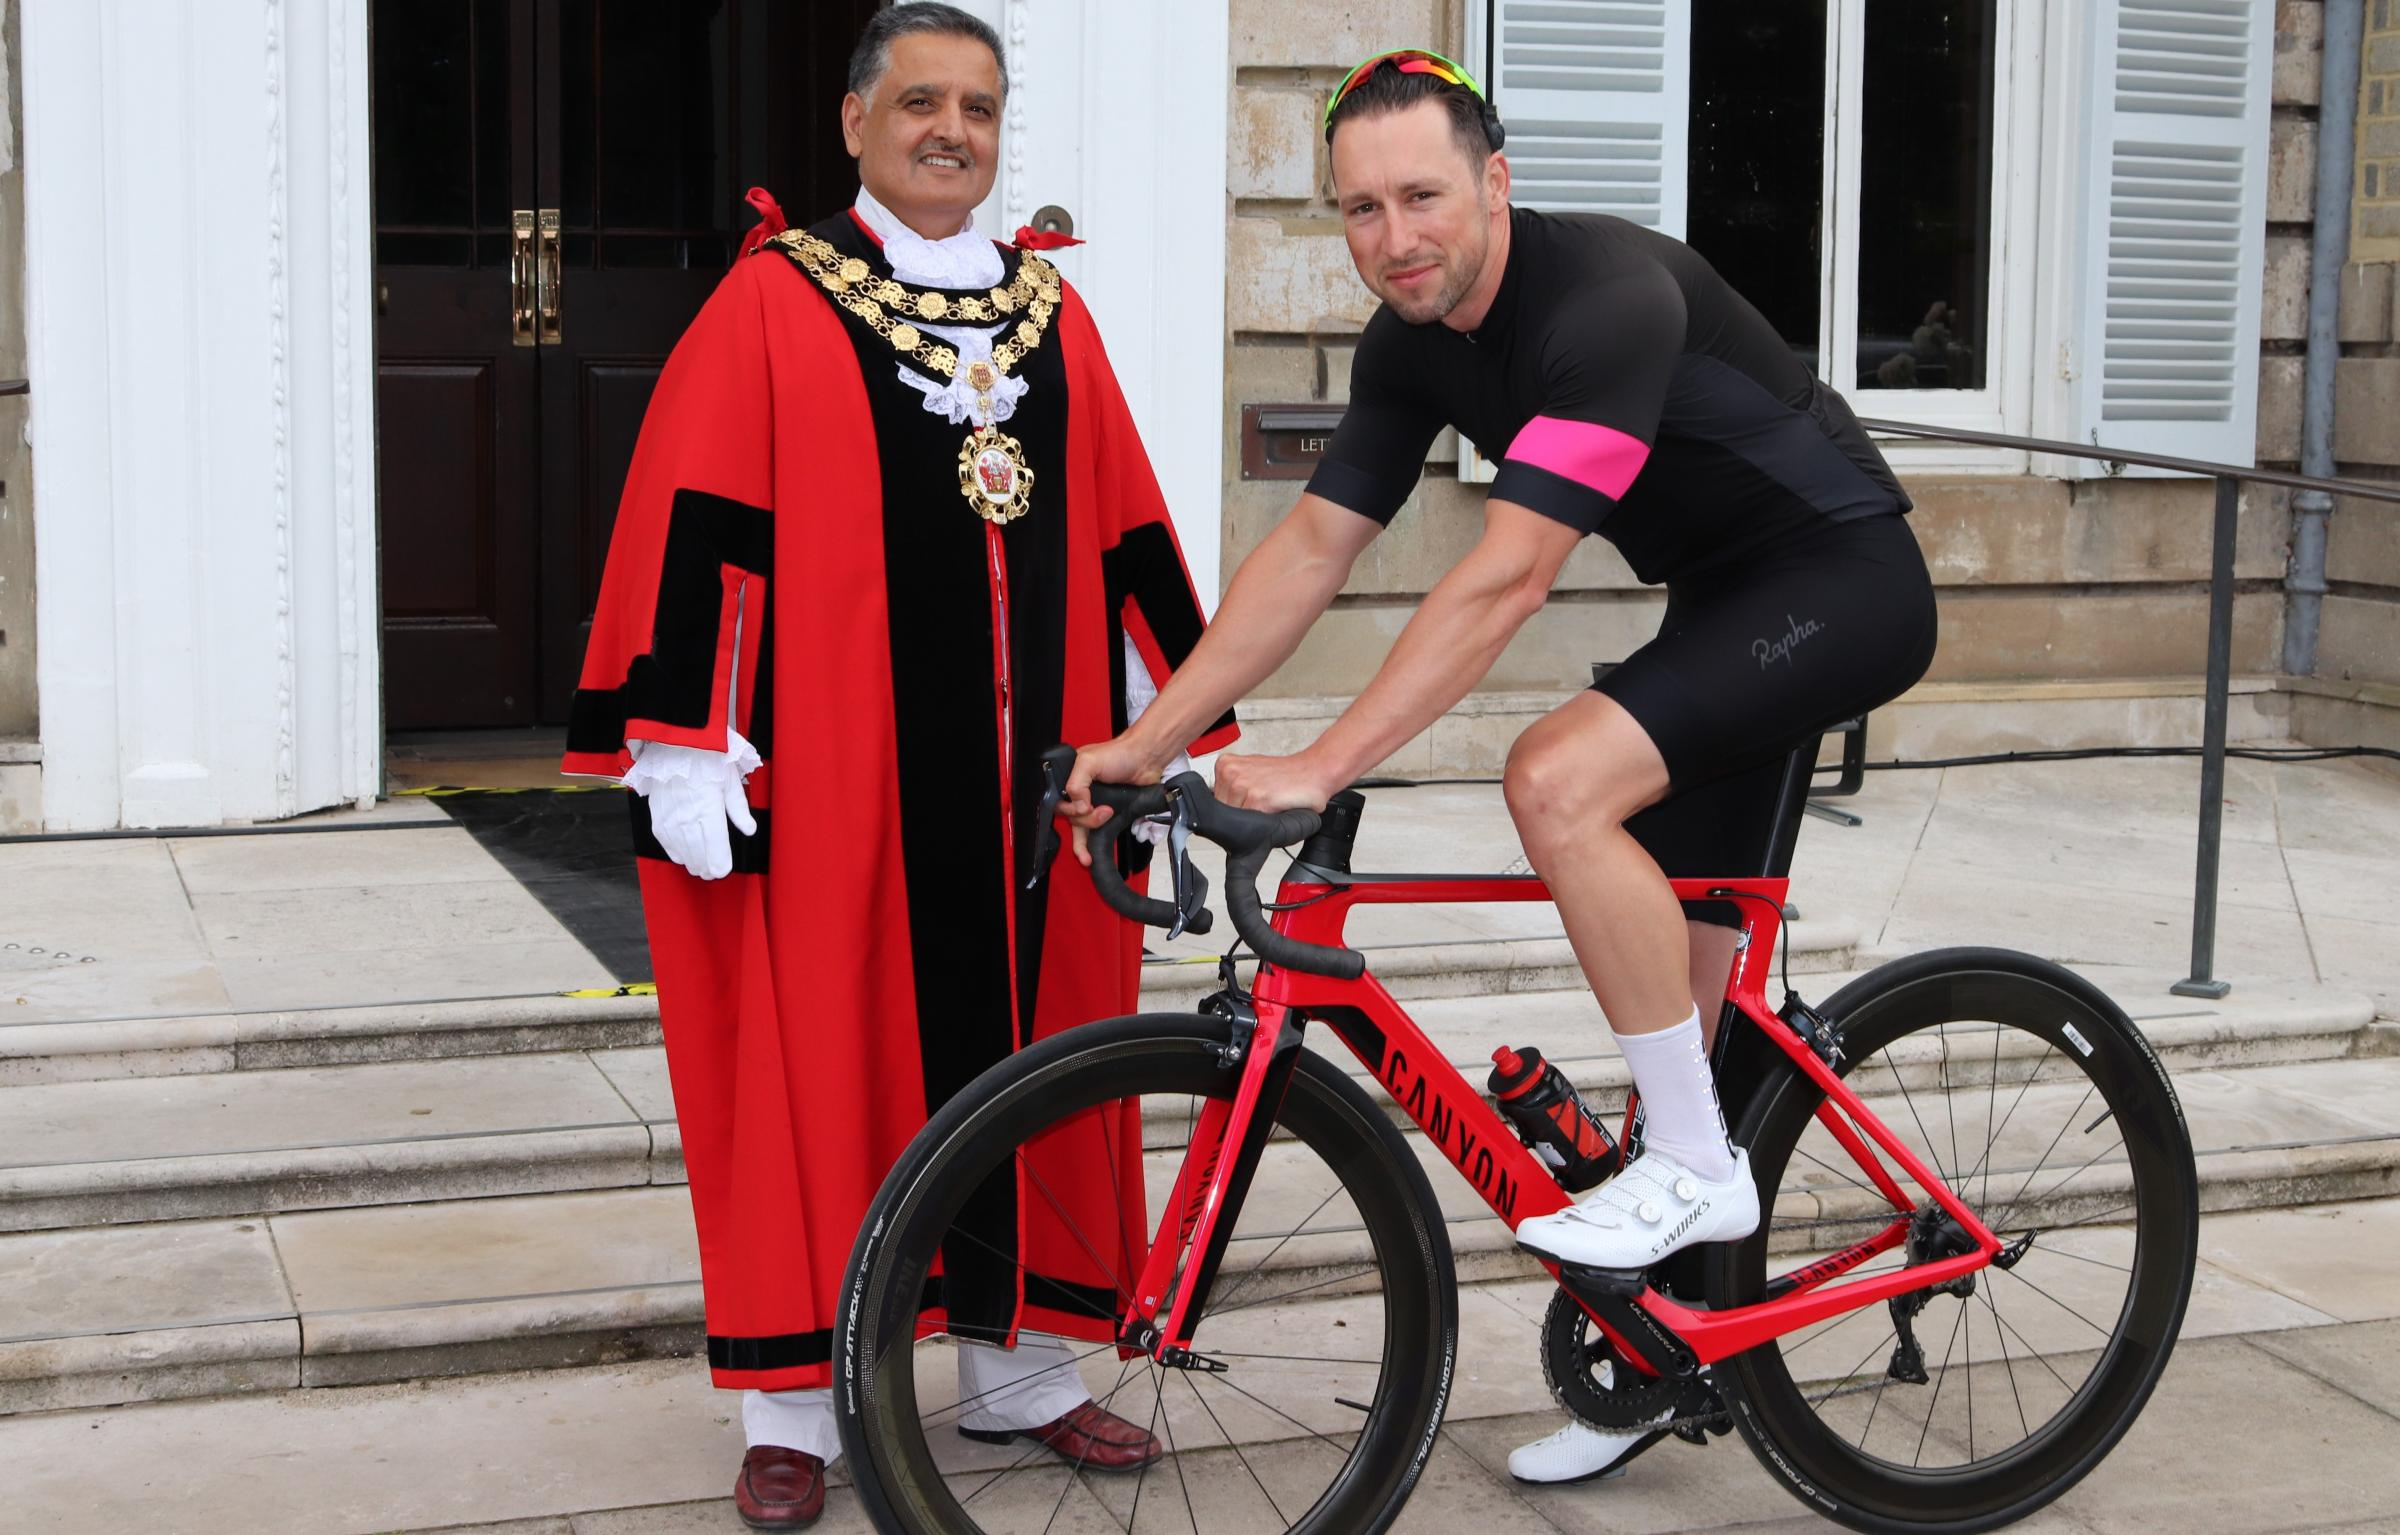 Mayor of Richmond upon Thames, Cllr Ben Khos and Joseph Fisher, Corporate Performance and Programmes Officer at Richmond Council